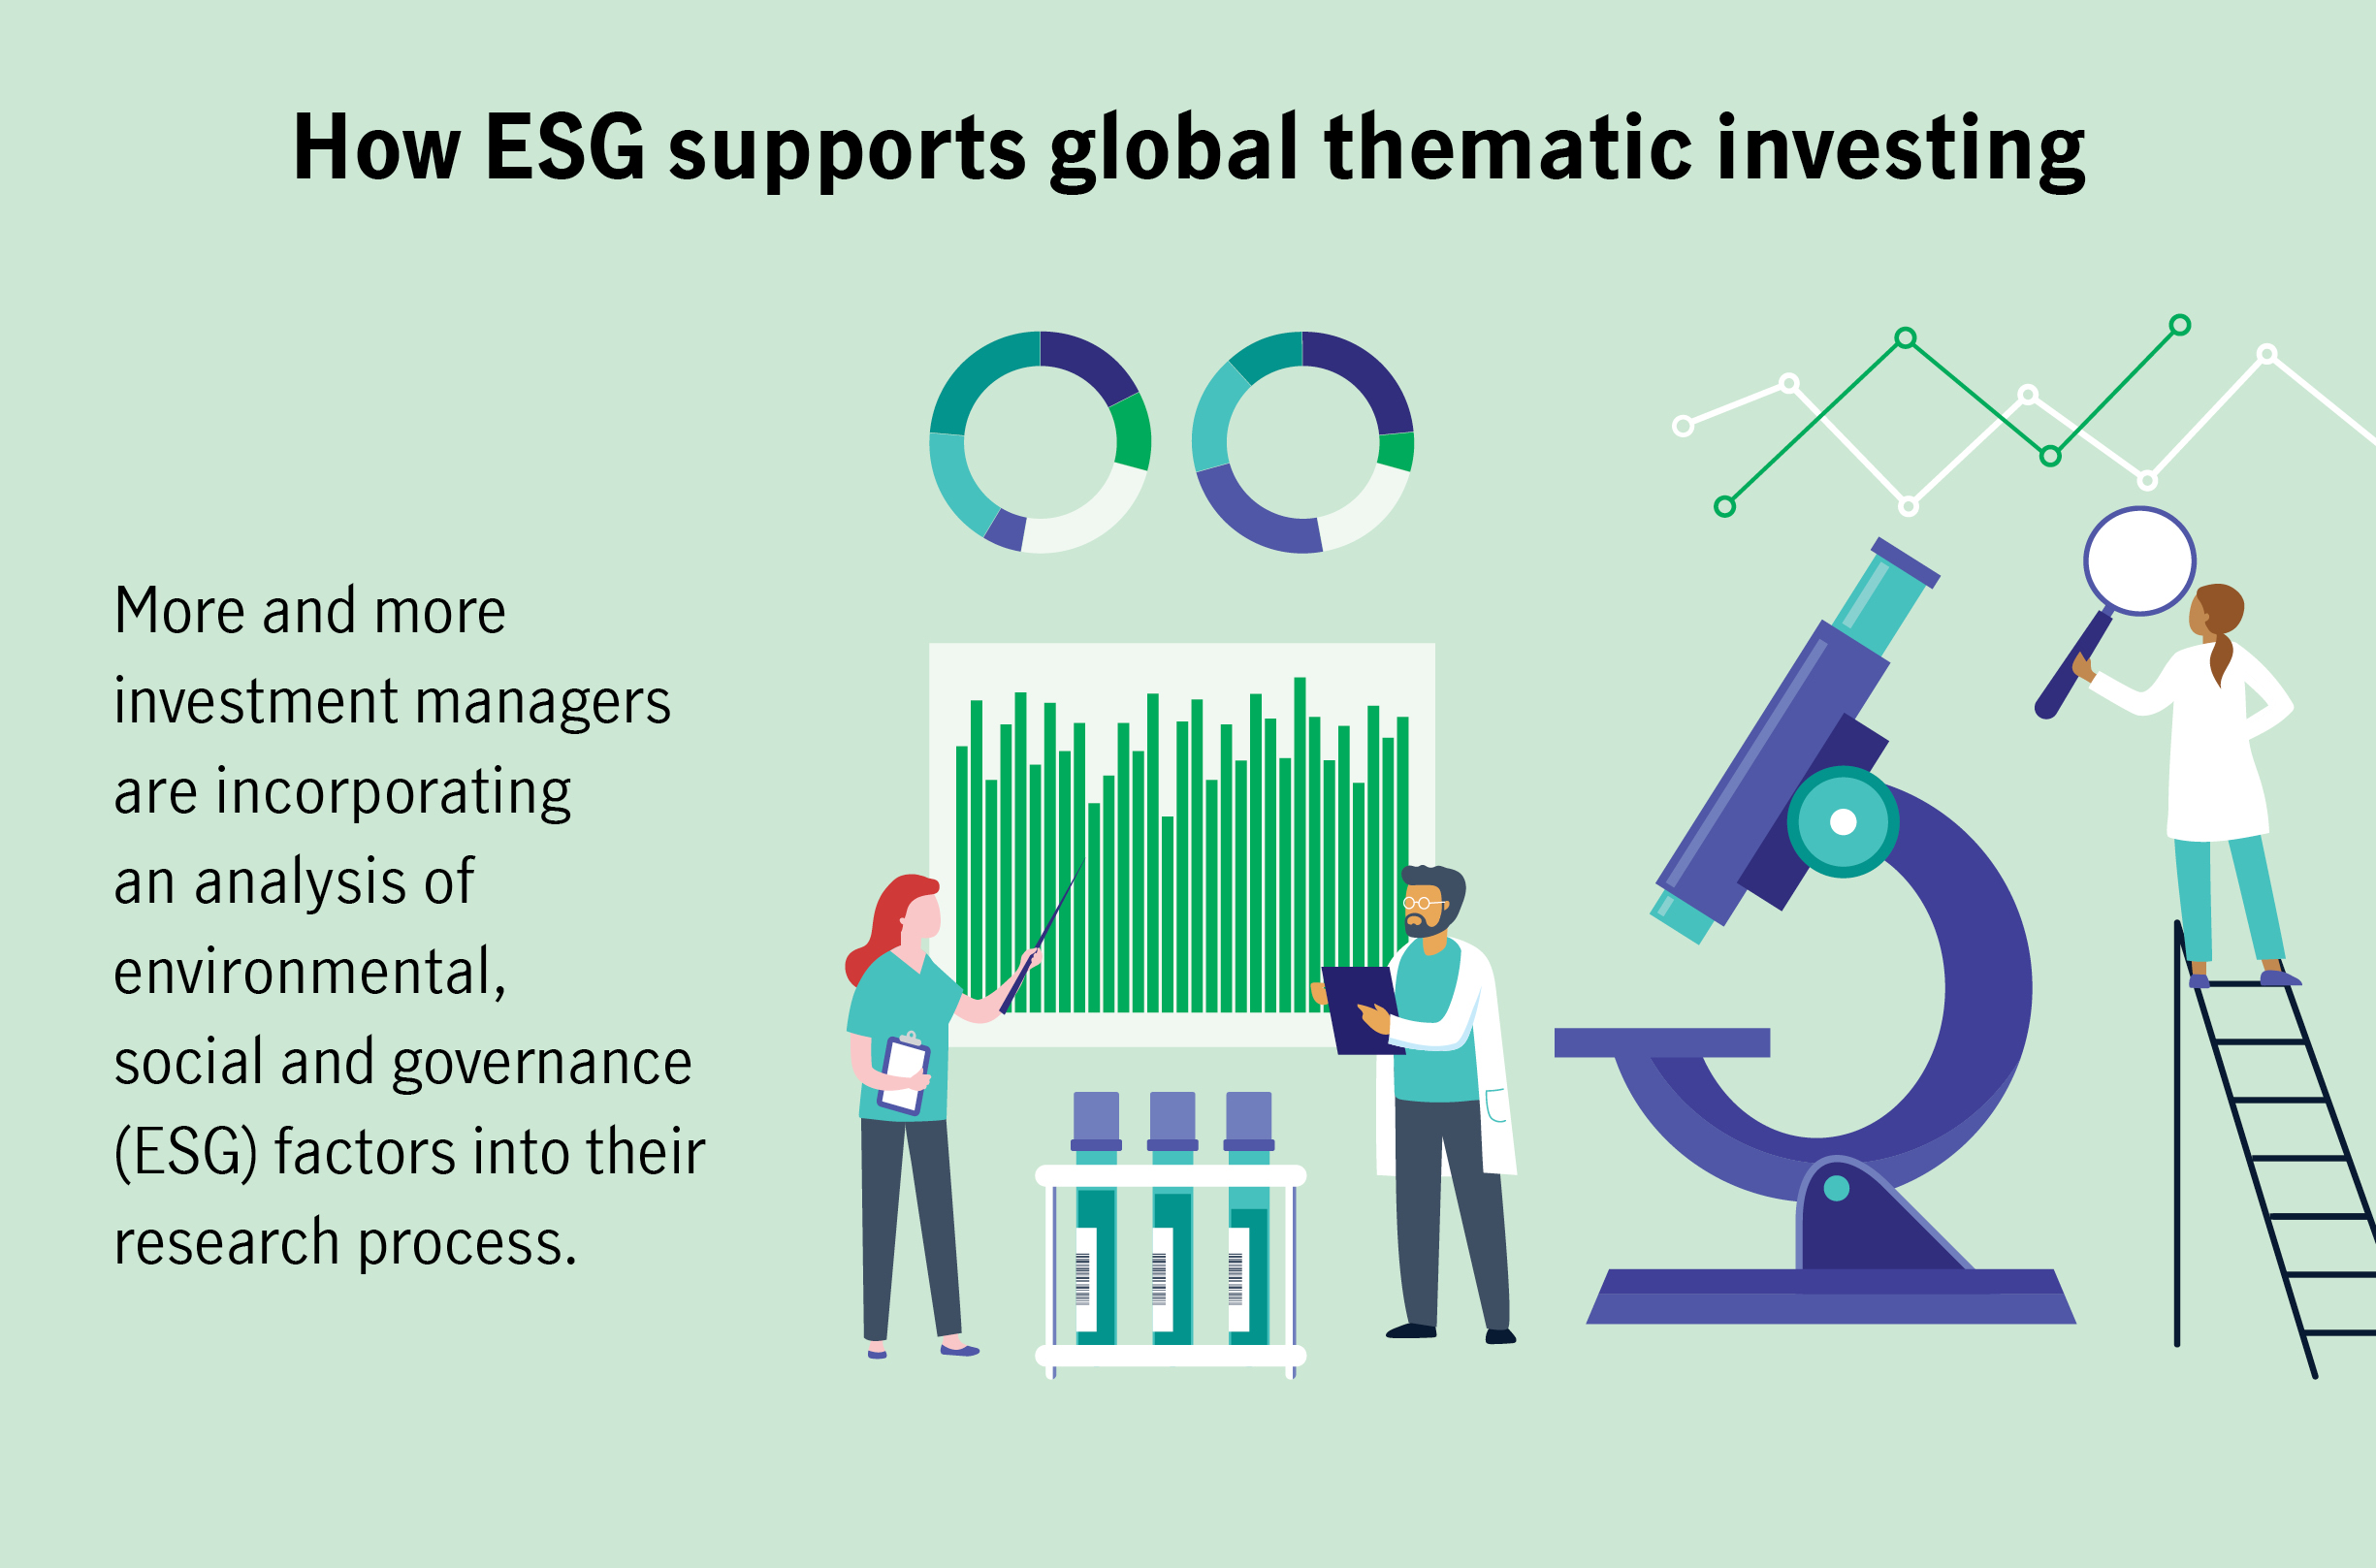 How ESG supports global thematic investing More and more investment managers are incorporating an analysis of environmental, social and governance (ESG) factors into their research process.